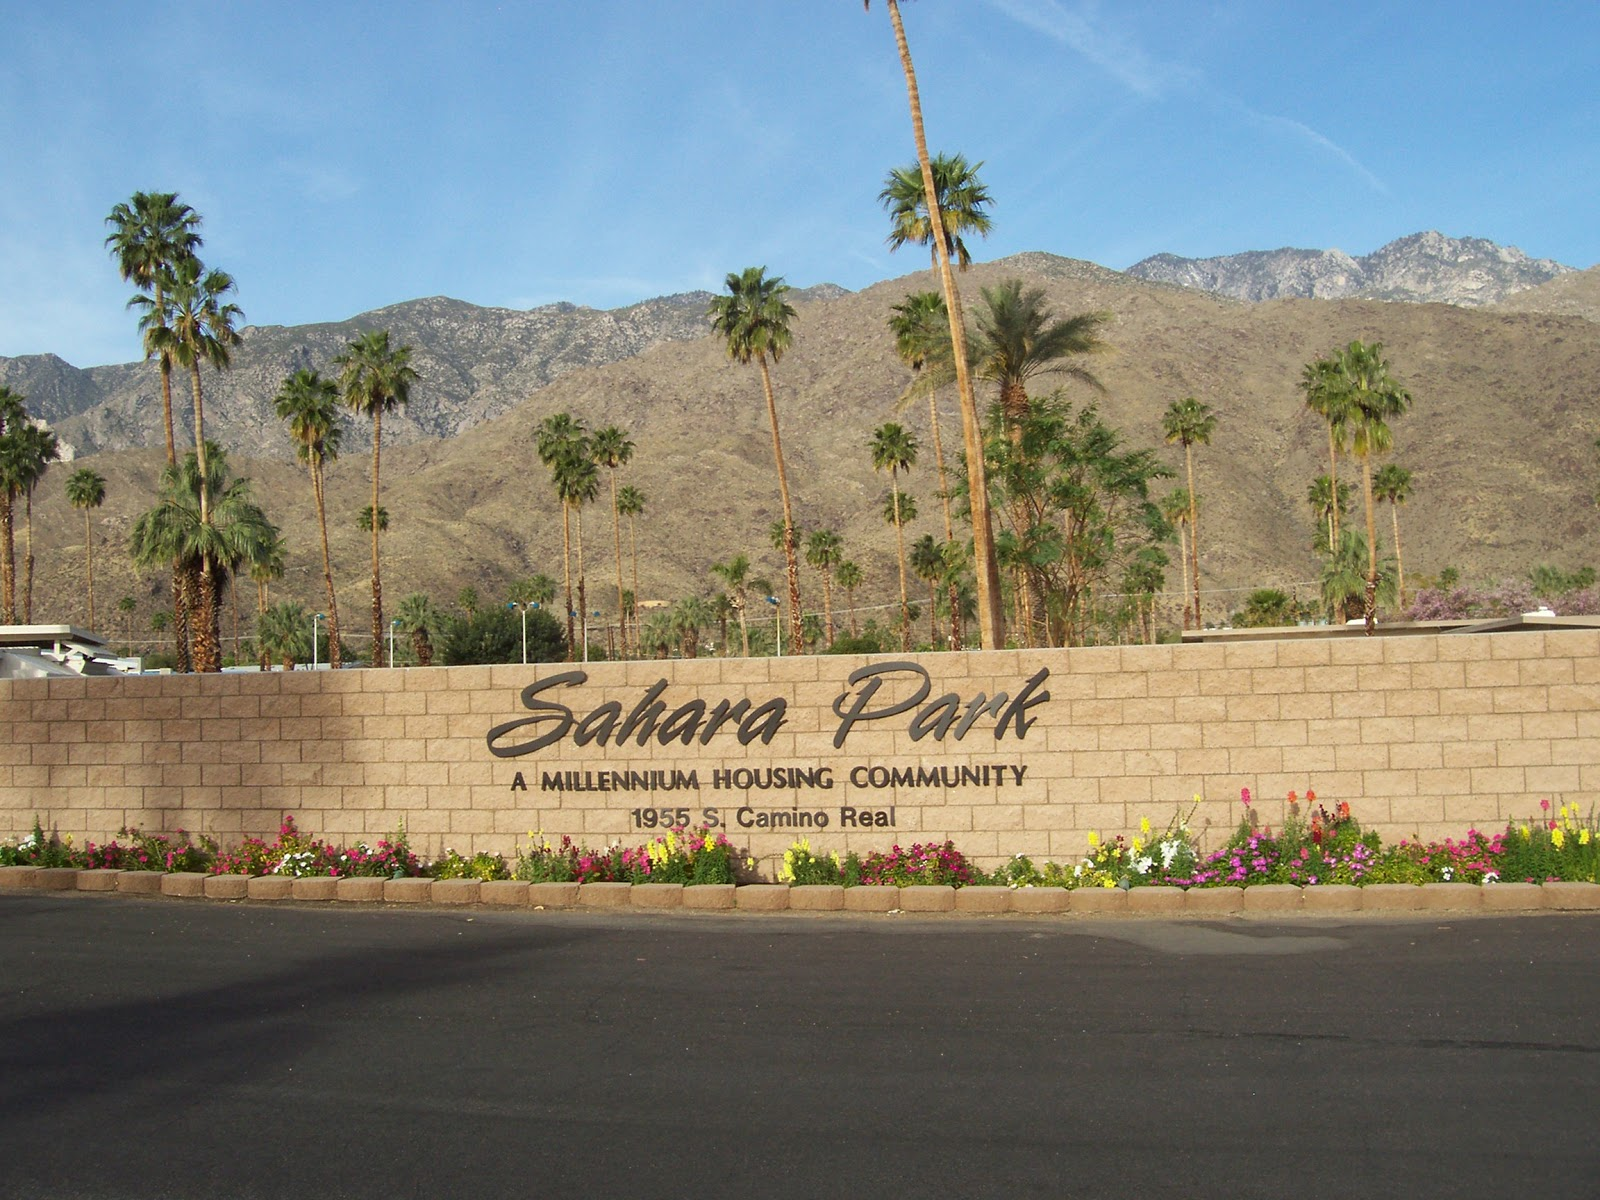 sahara mobile home park palm springs with Thinking About Growing Old on Parkview Mobile Estates in addition Pleasanton Texas together with Id A 1666063 as well Pid 18351686 additionally Thinking About Growing Old.